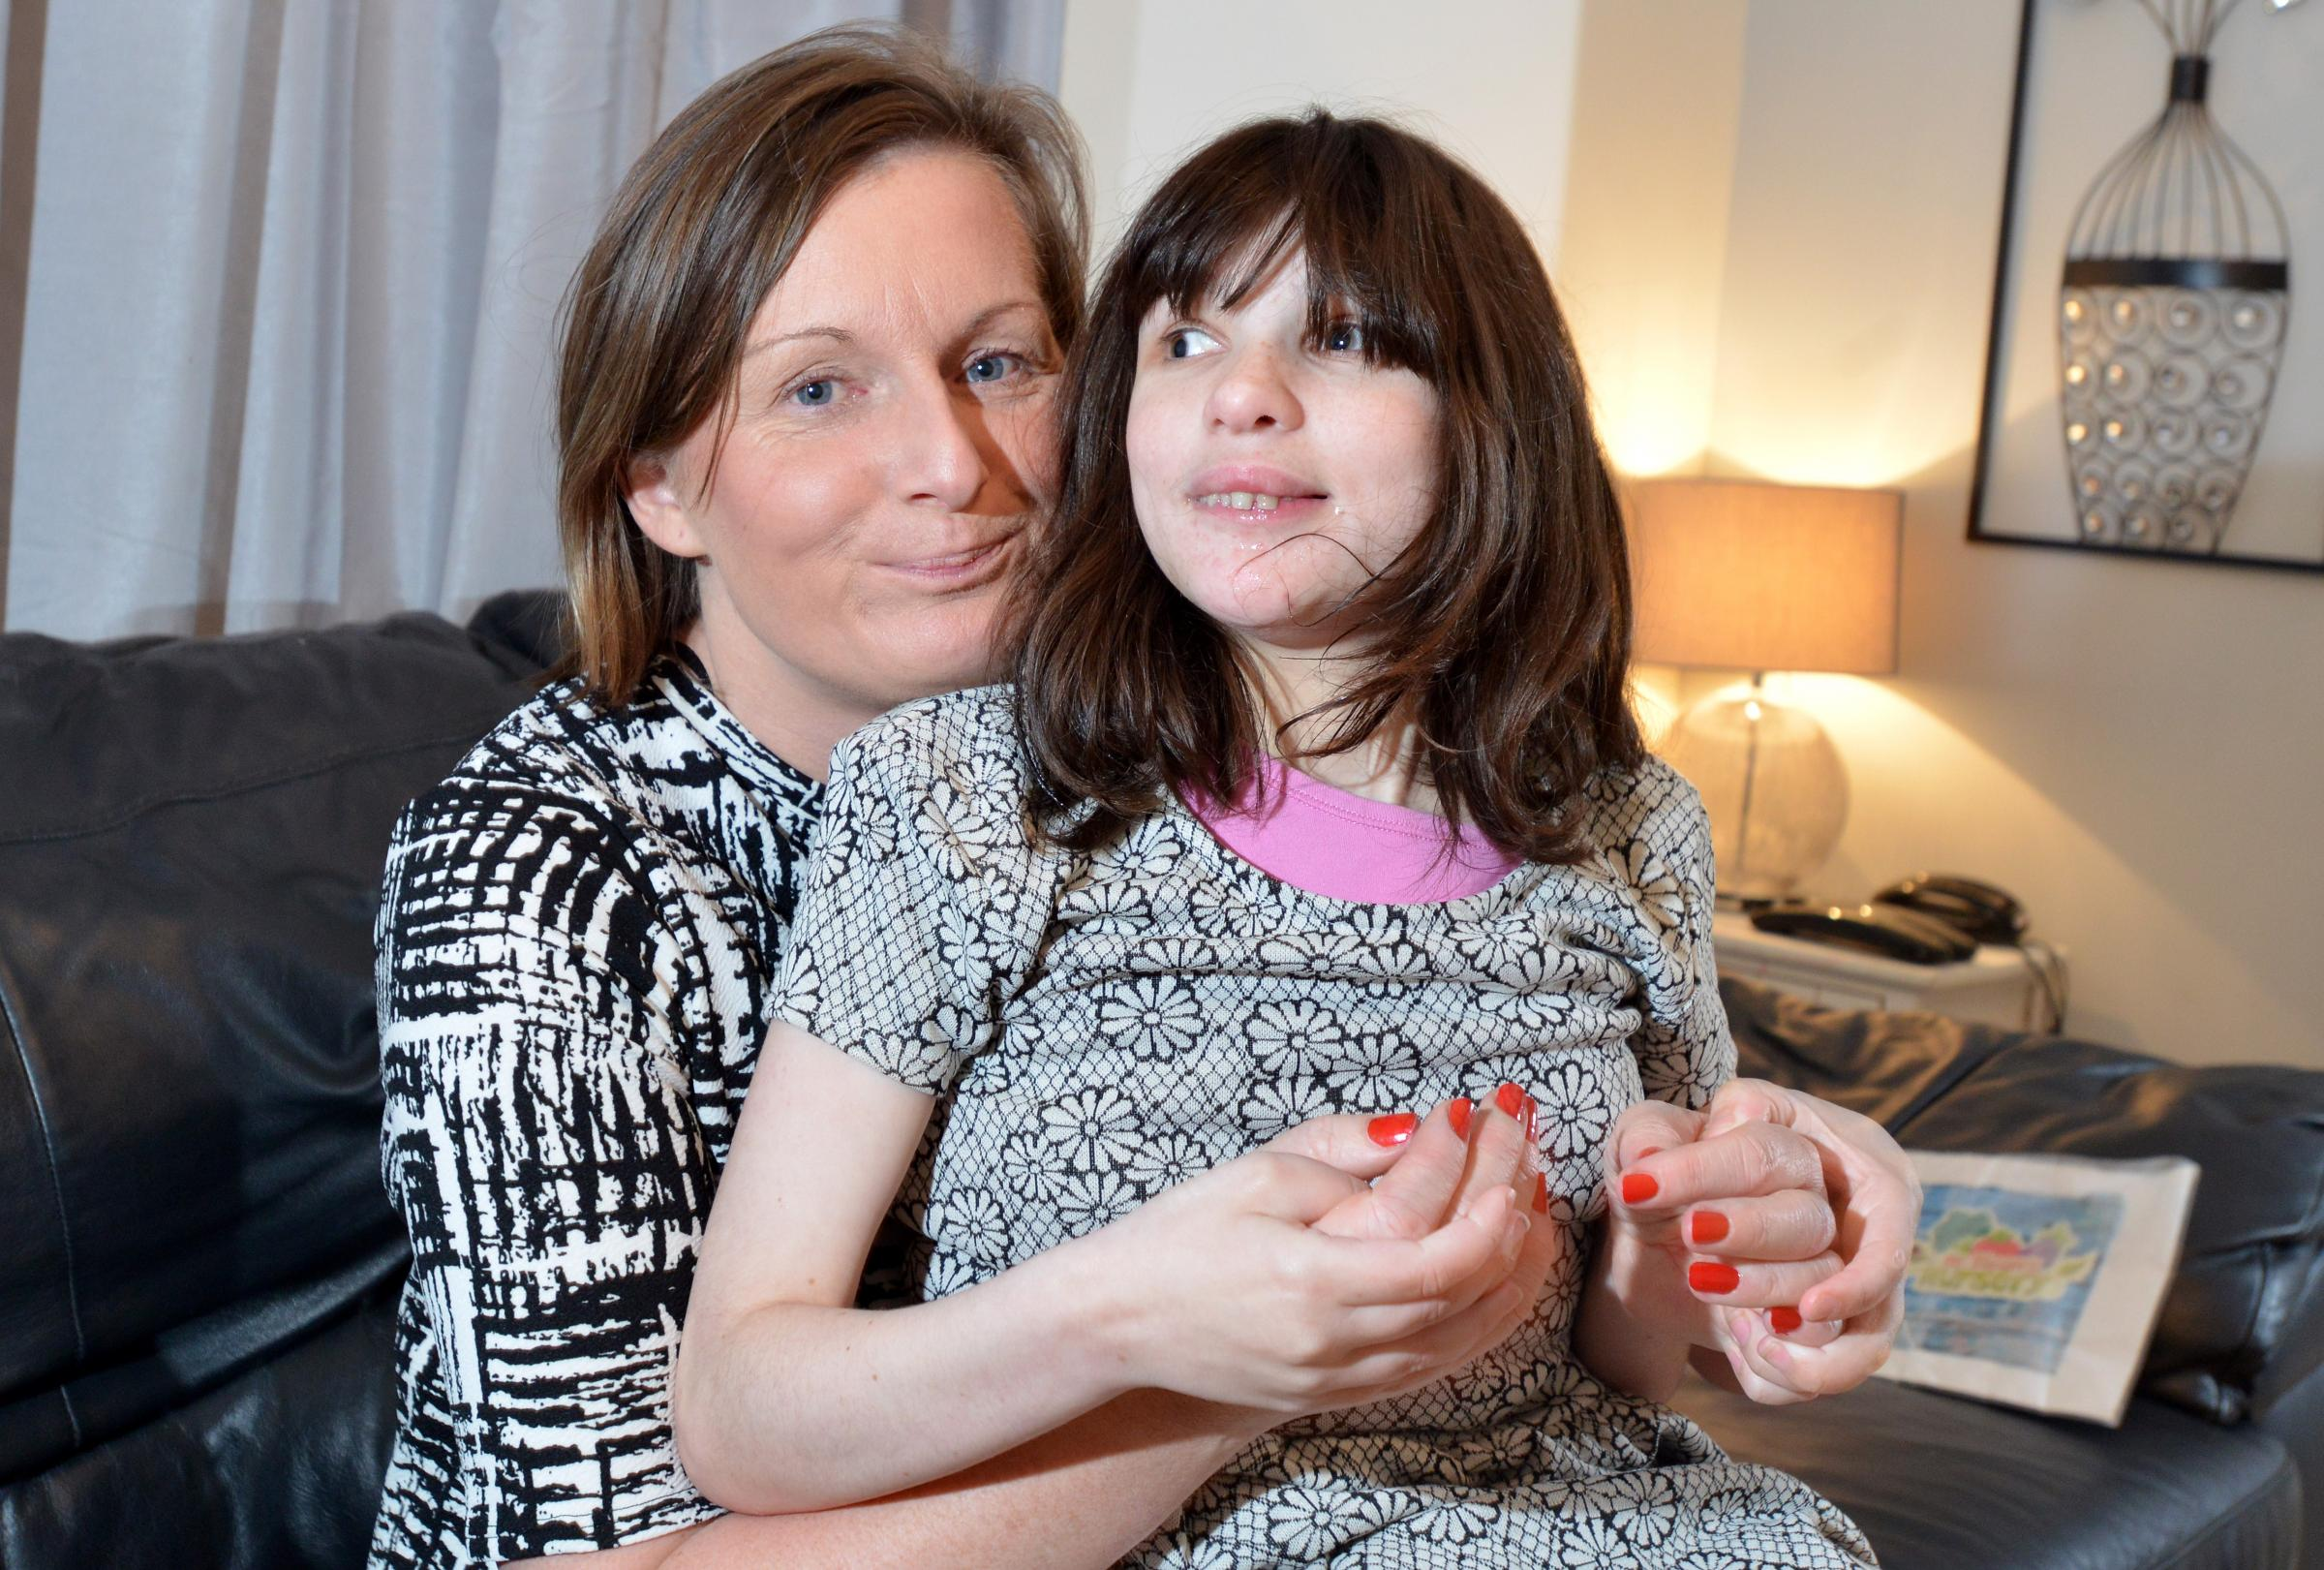 Louise McDonald from Eccleshill with her daughter Ellie (19). The department of Work and pensions say she has to be assessed as being not fit for work